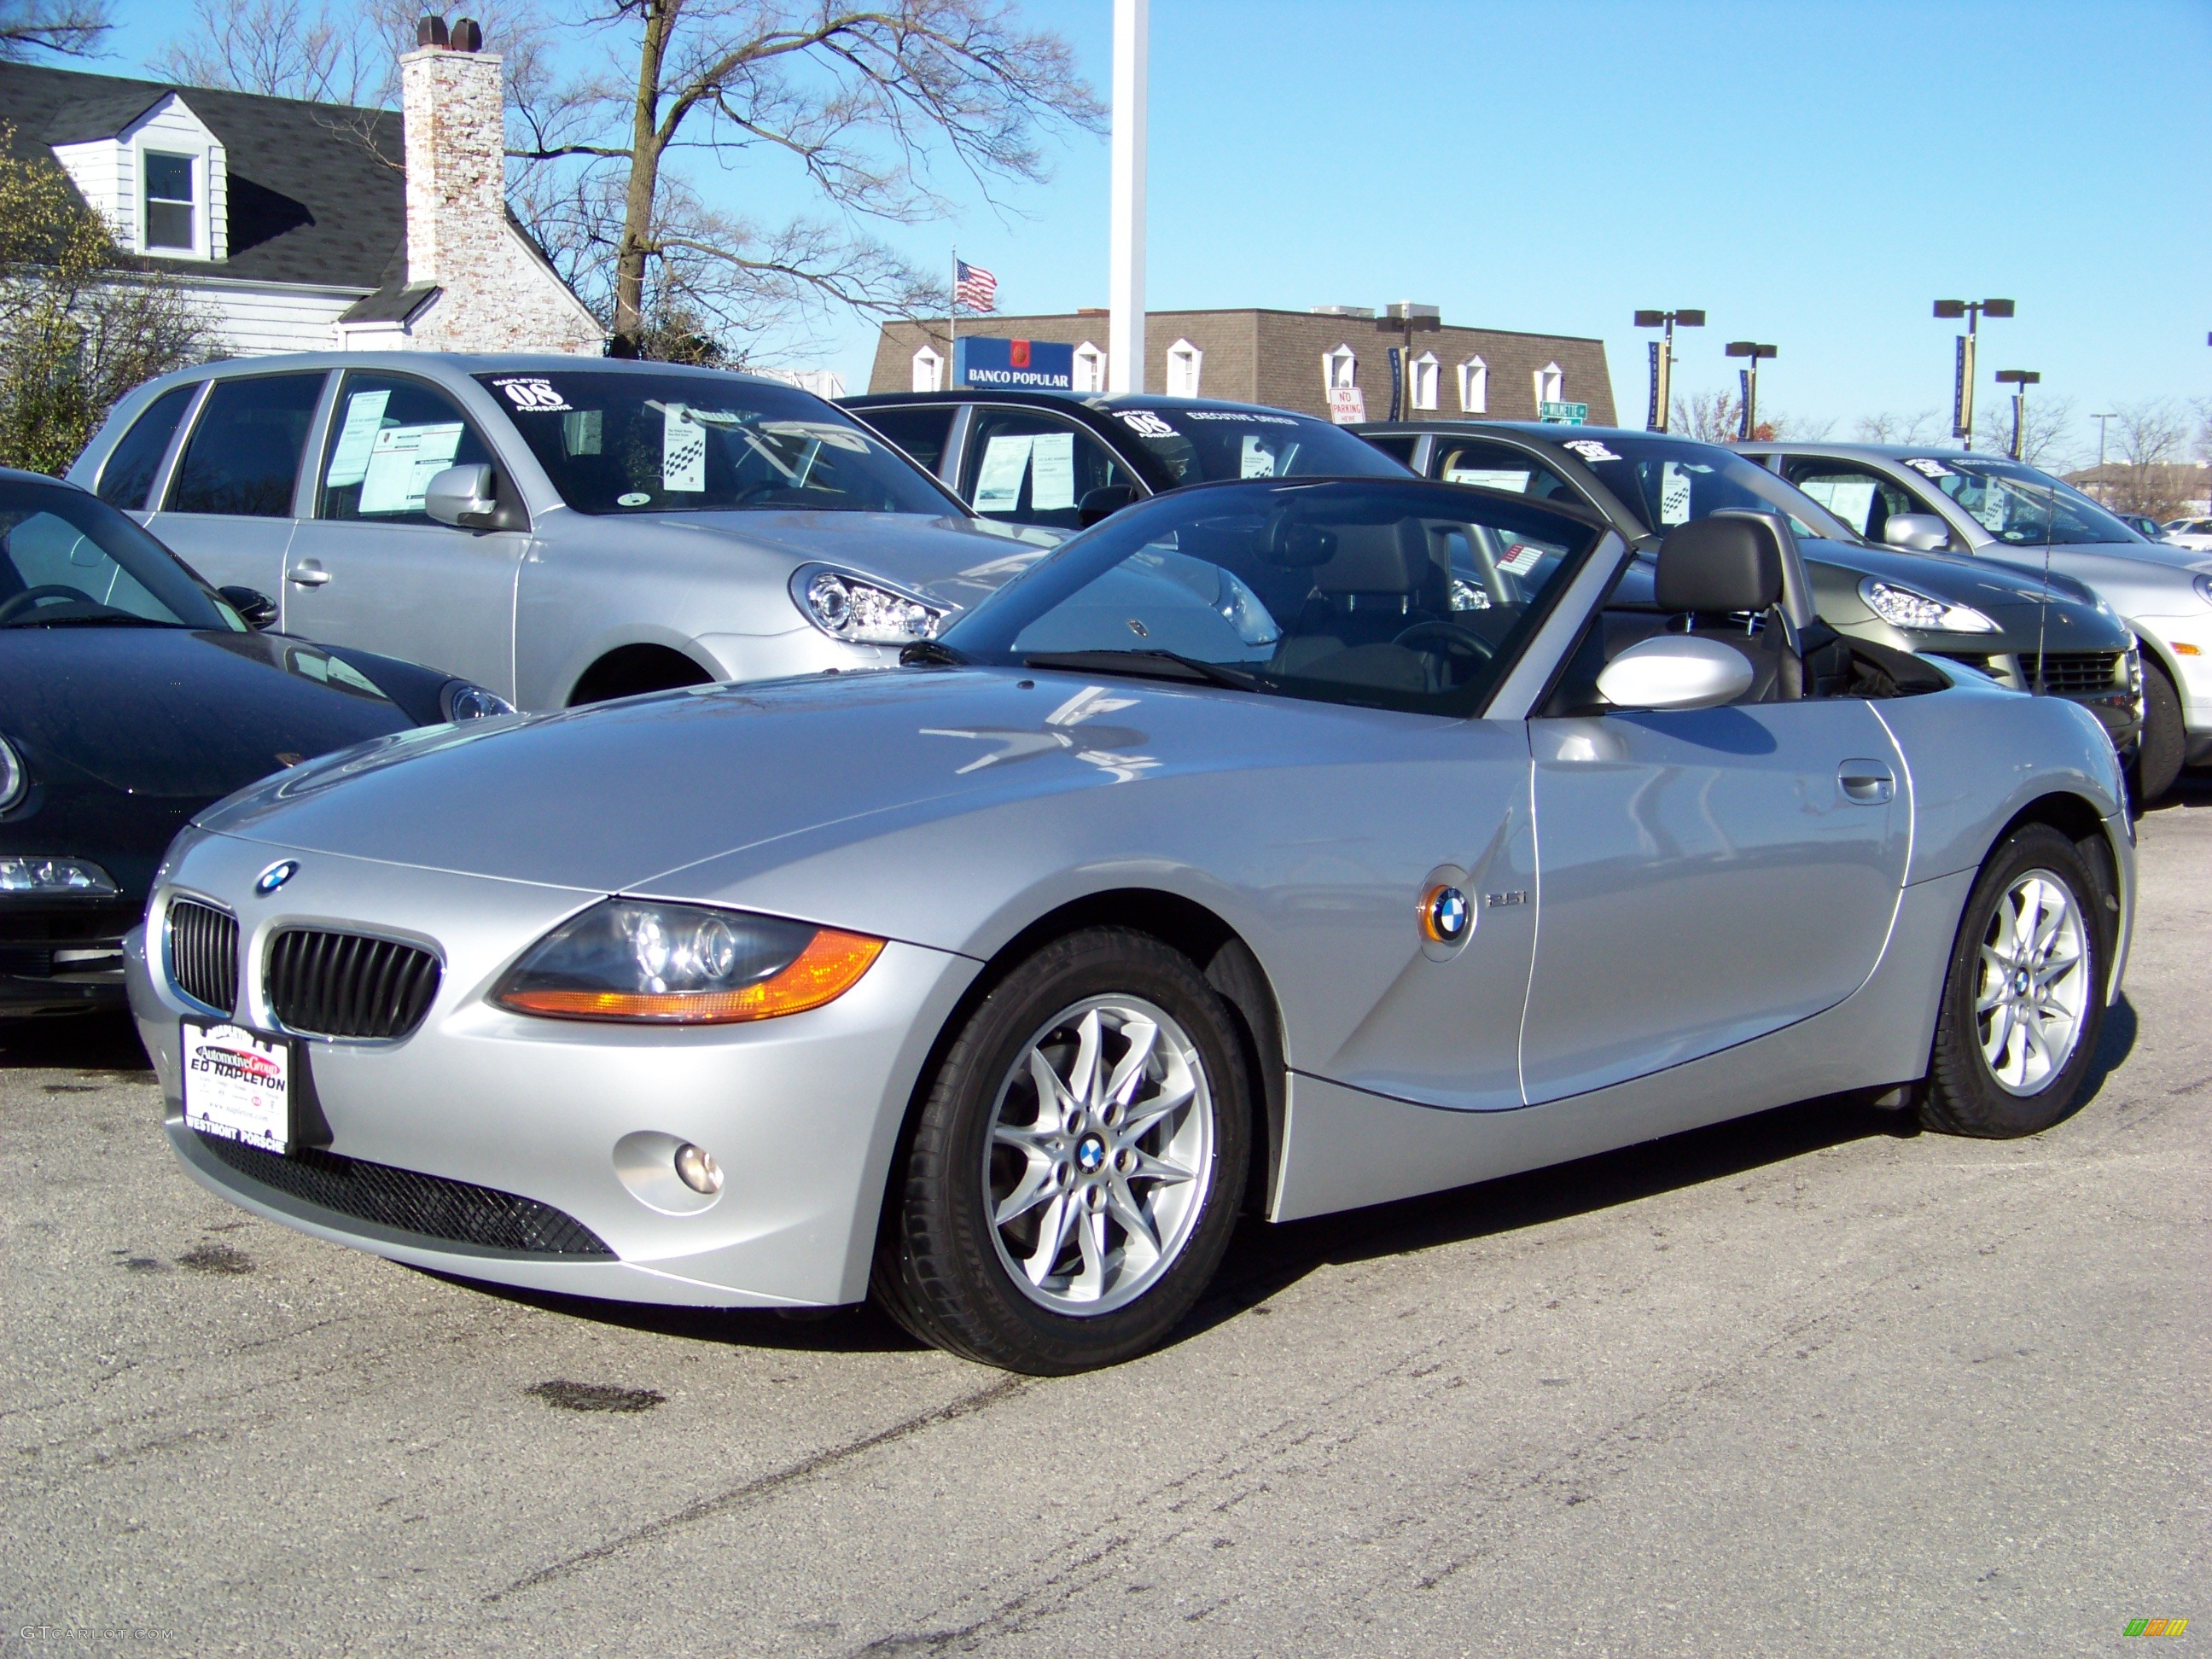 2003 Silver Bmw Z4 2 5i Roadster 786811 Photo 22 Gtcarlot Com Car Color Galleries